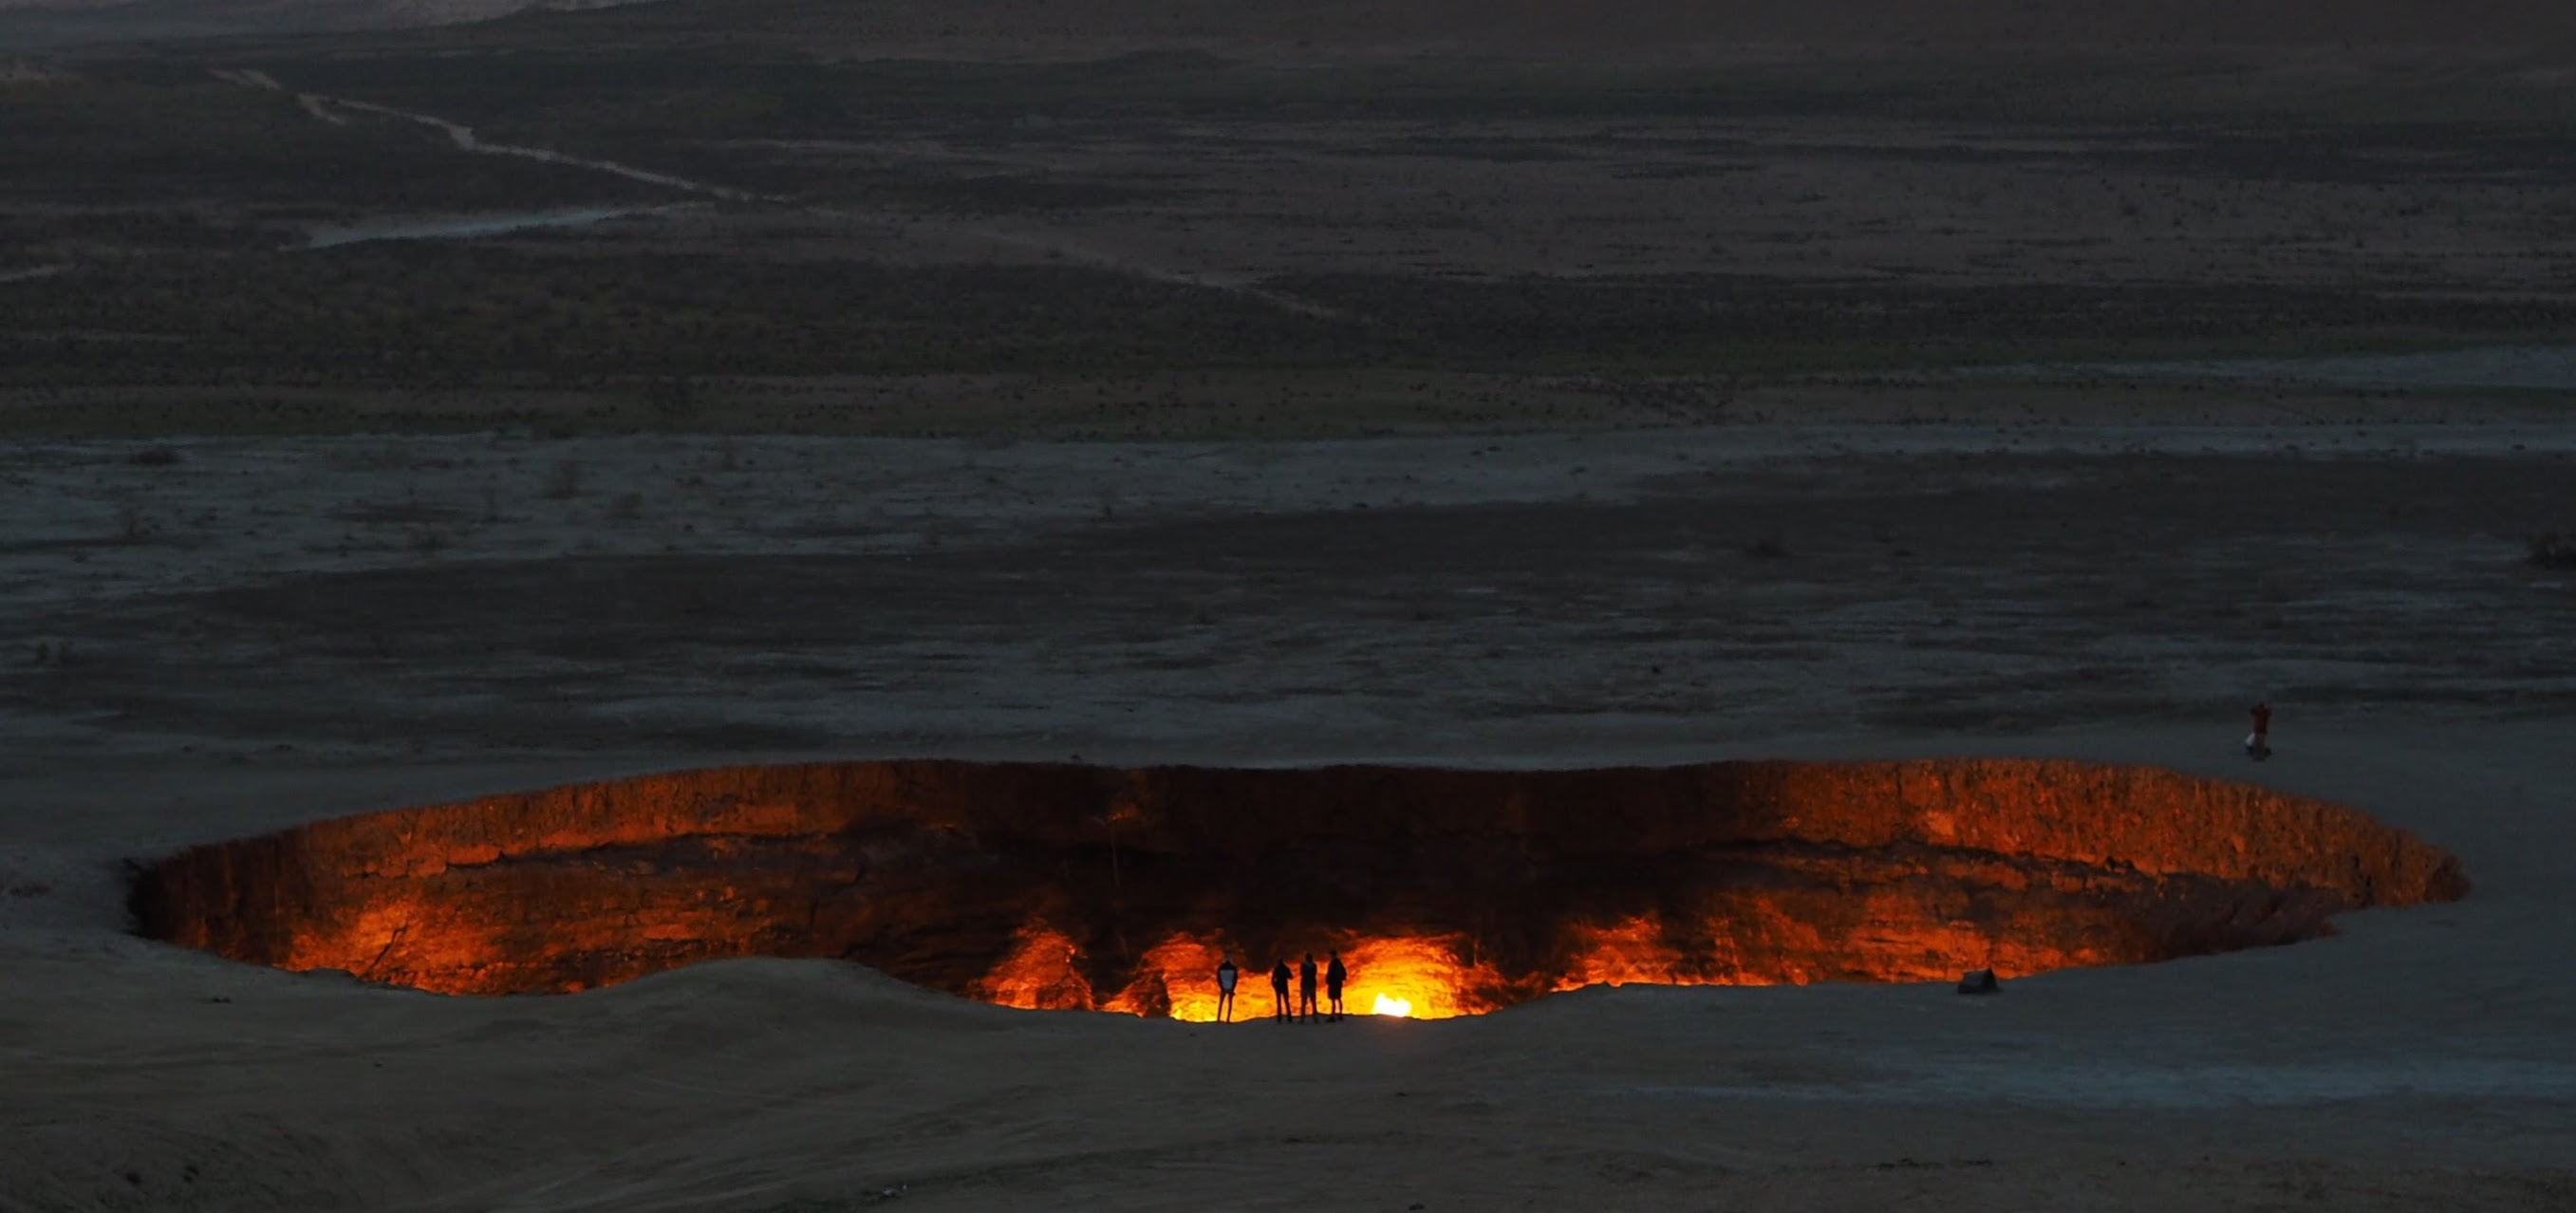 Turkmenistan's Door to Hell